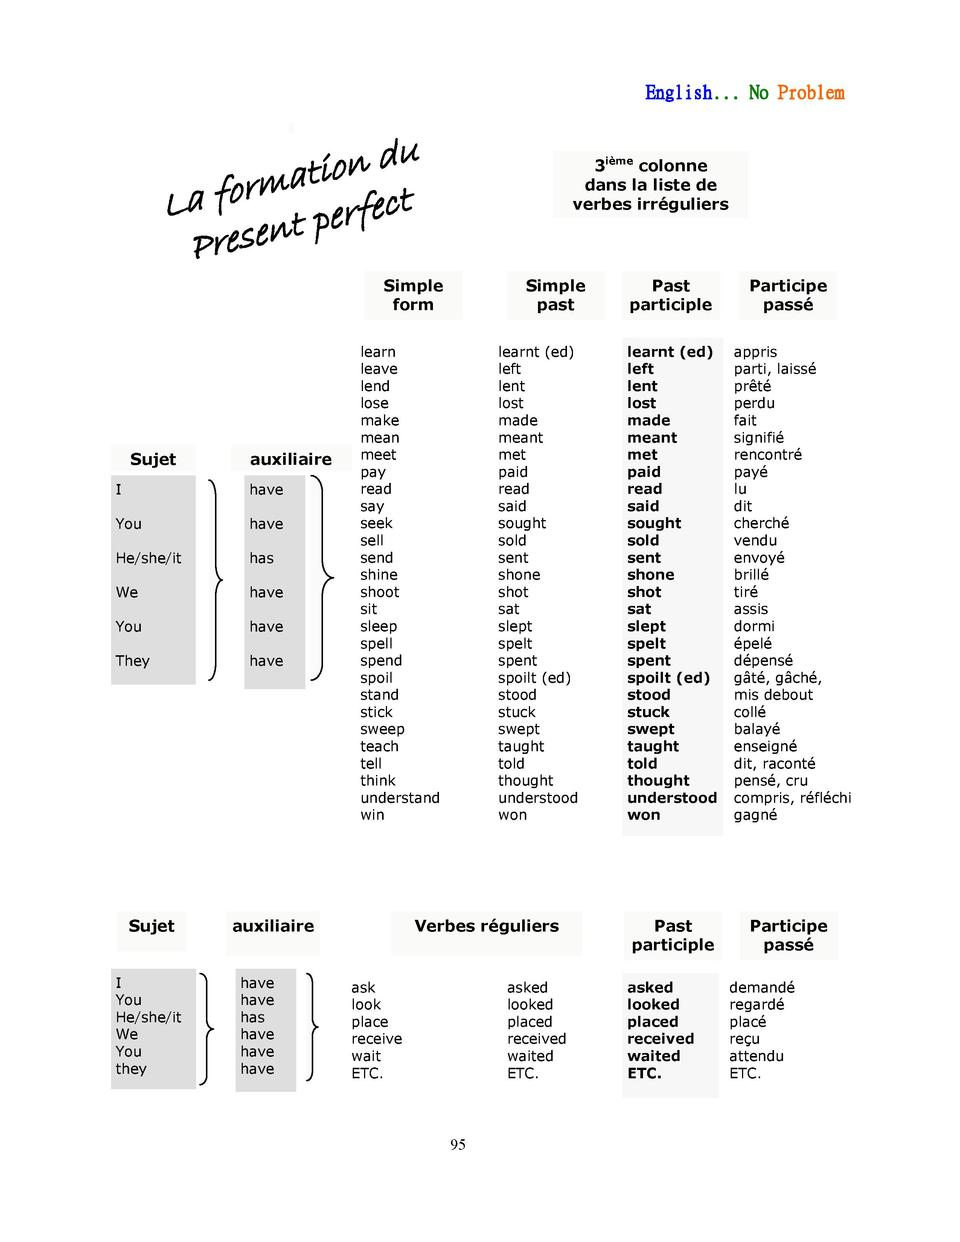 English... No Problem  u tion d a a form perfect L resent P  3i  me colonne dans la liste de verbes irr  guliers  Simple f...